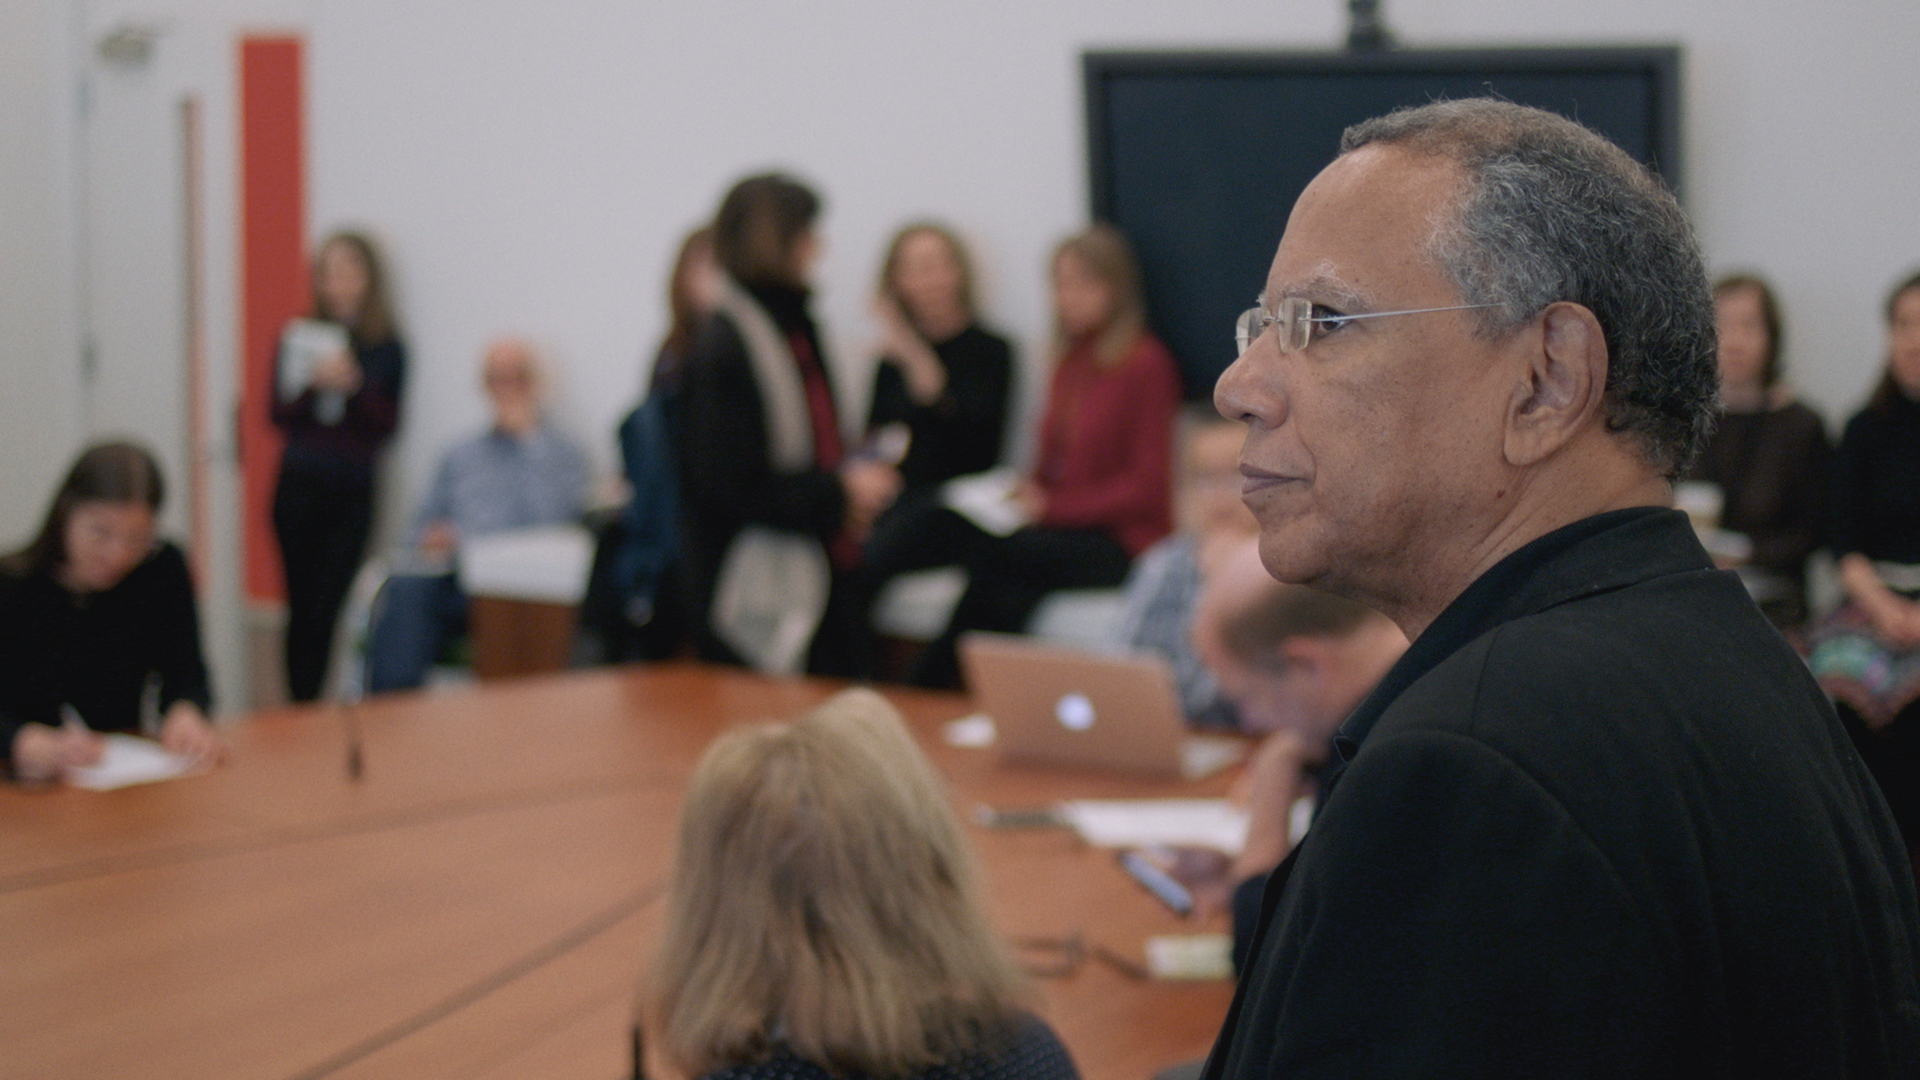 Dean Baquet, rédacteur en chef du New York Times